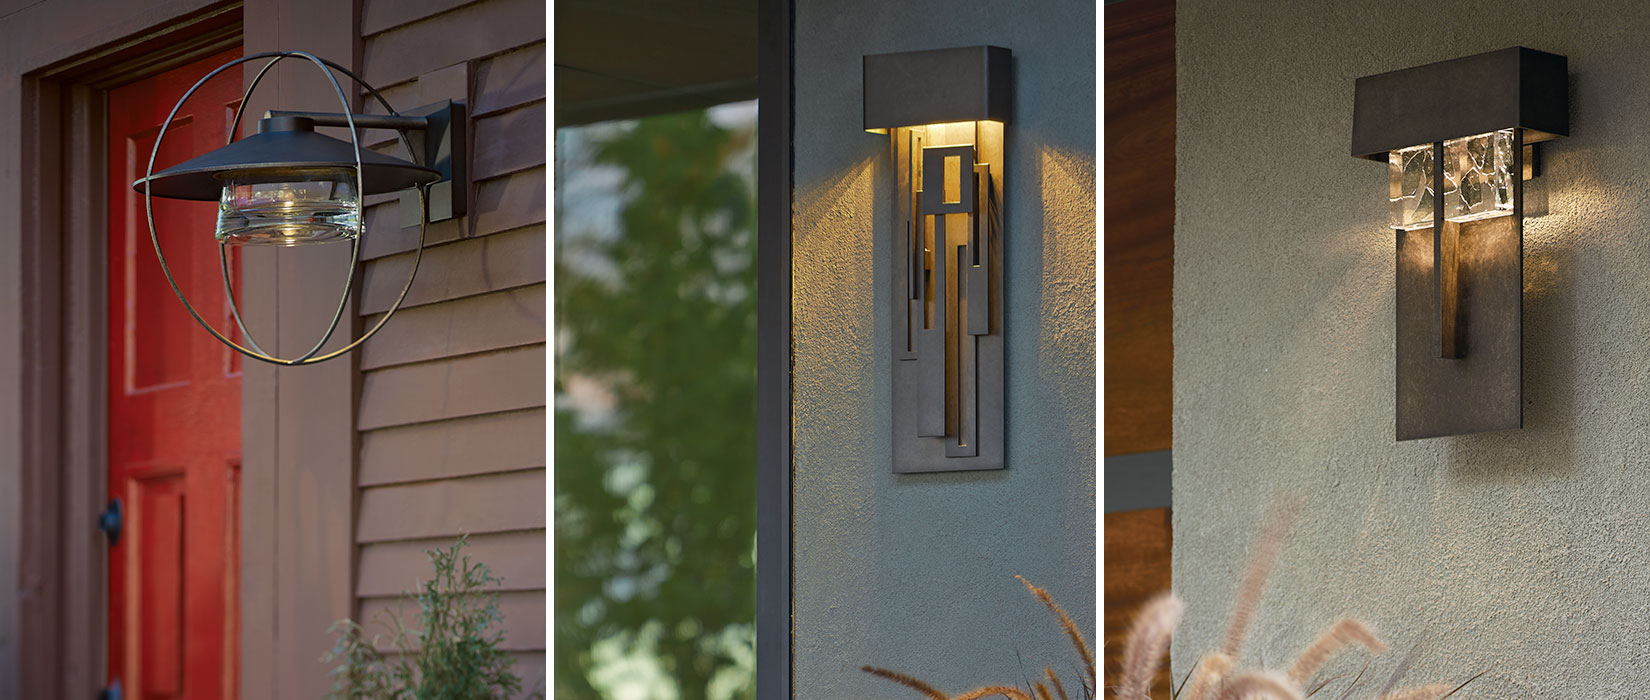 Outdoor lighting by Hubbardton Forge